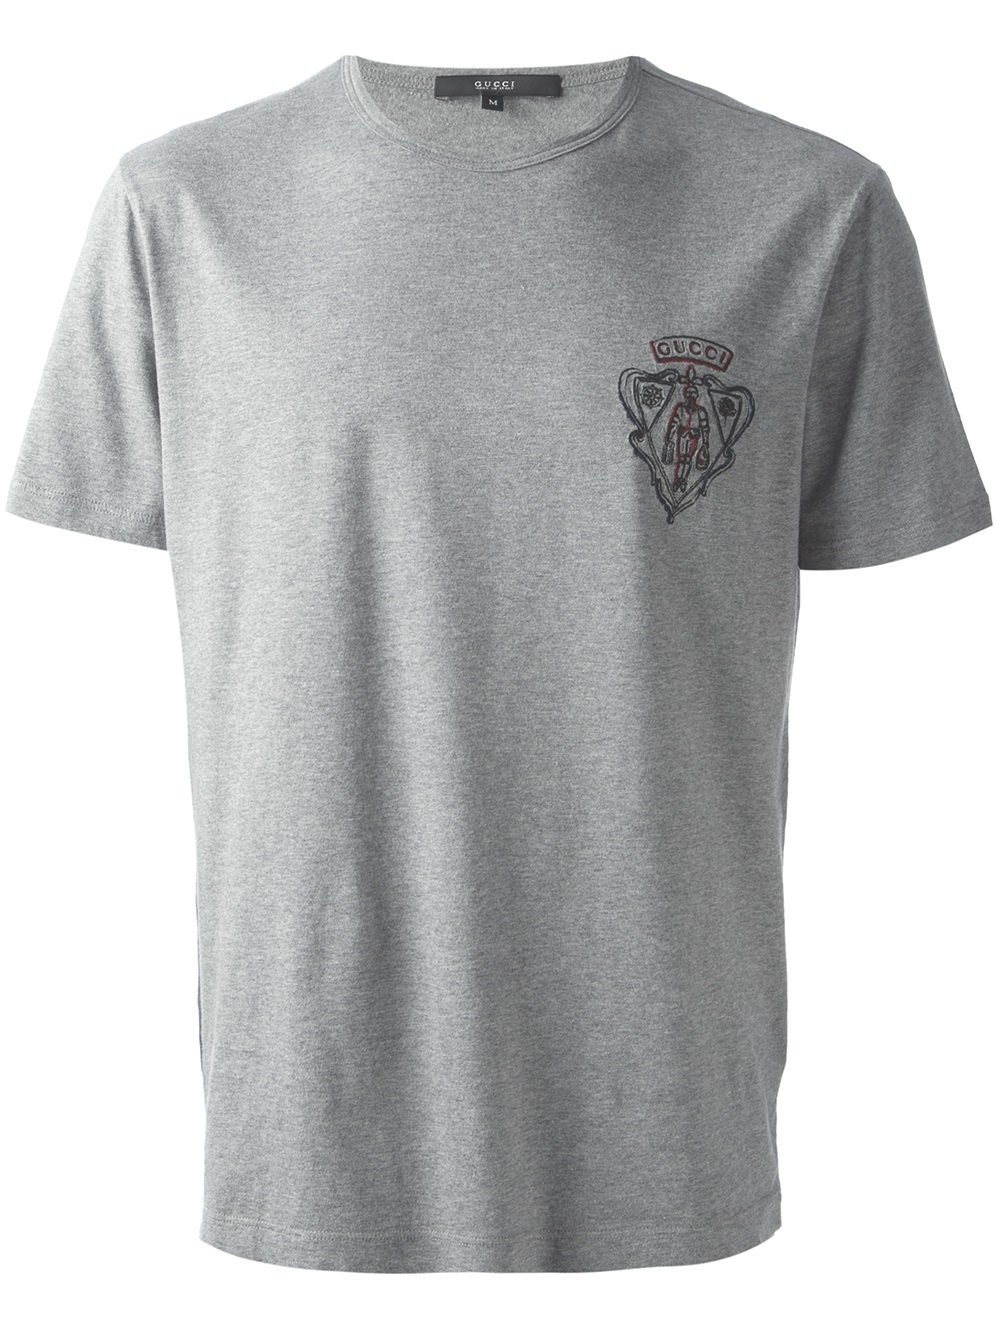 Lyst Gucci Logo Print T Shirt In Gray For Men